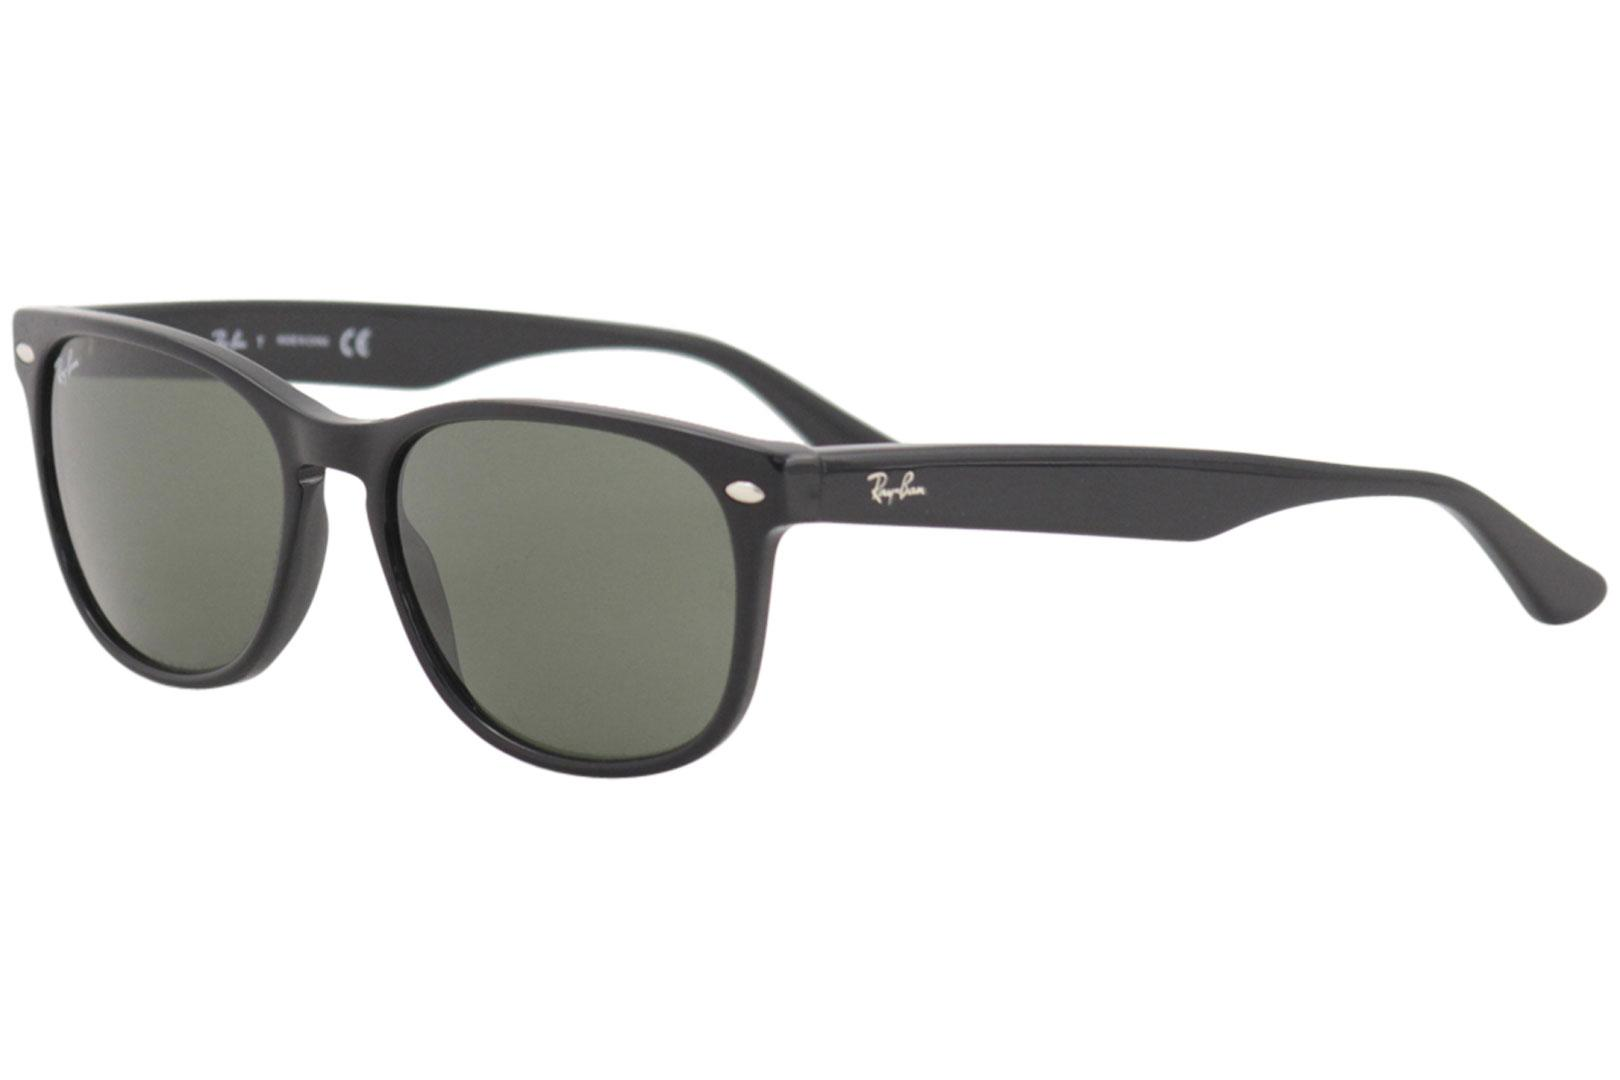 04f1b778c0 ... RB 2184 Fashion Rectangle RayBan Sunglasses by Ray Ban. Touch to zoom